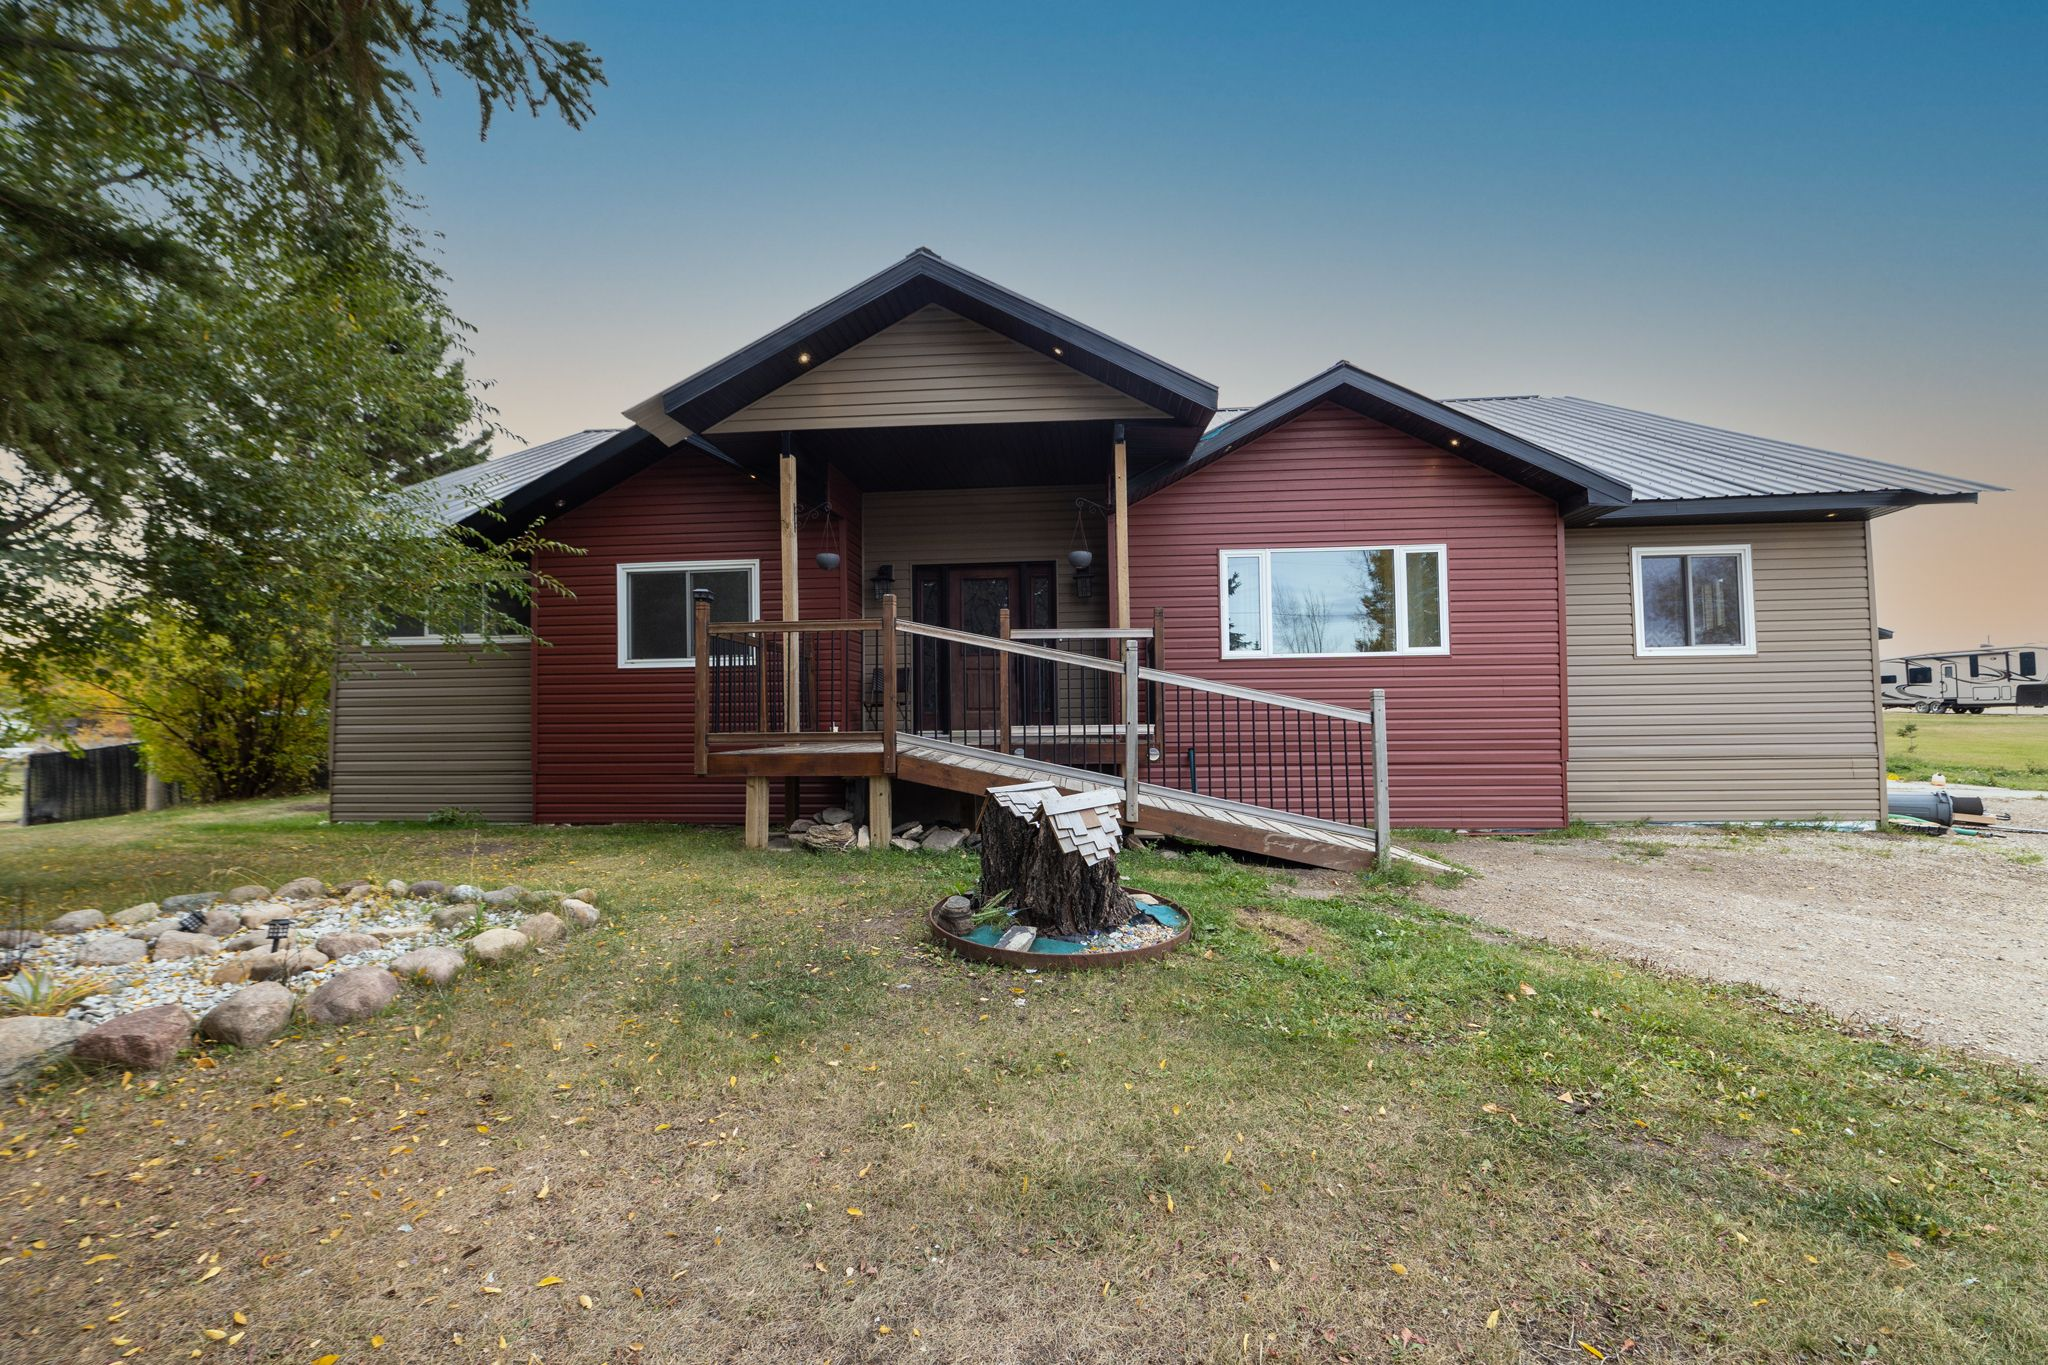 Main Photo: 30 49547 RR 243 in Leduc County: House for sale